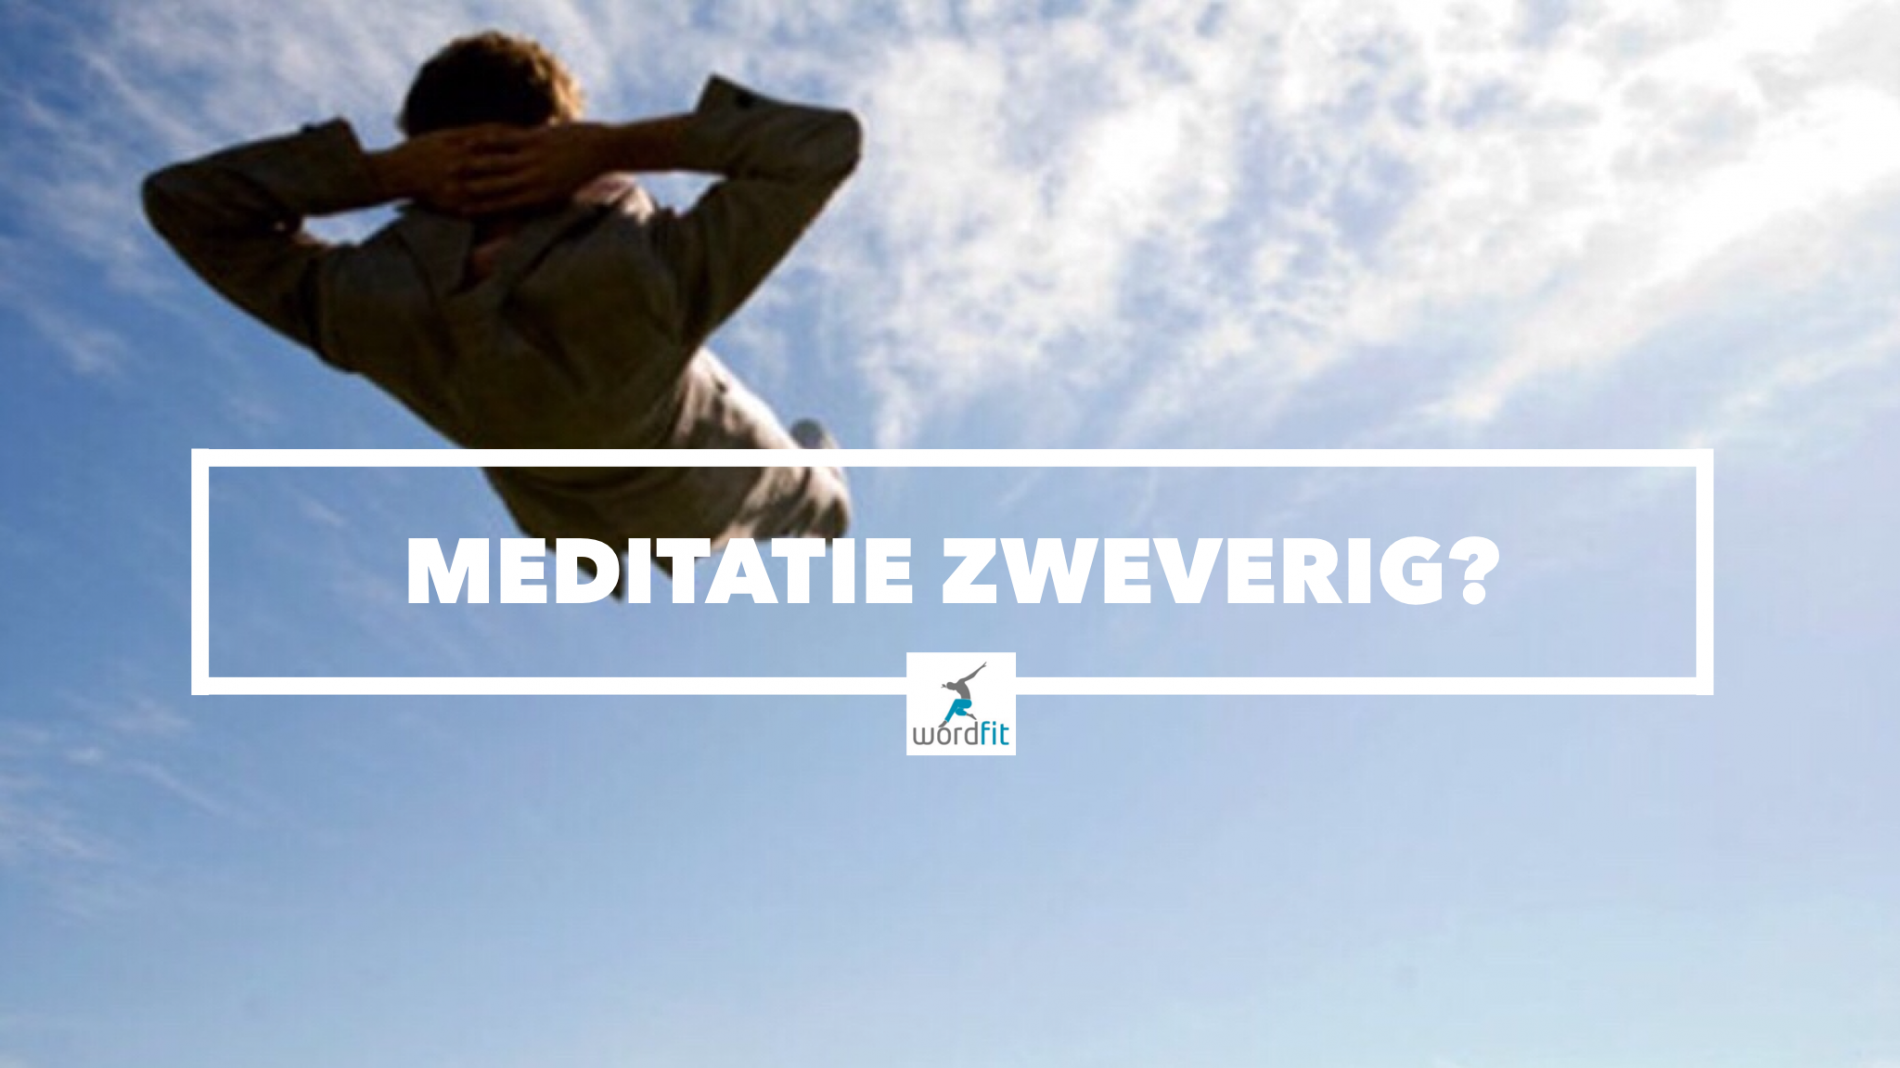 Meditatie is niet per se zweverig WordFit.be mindset